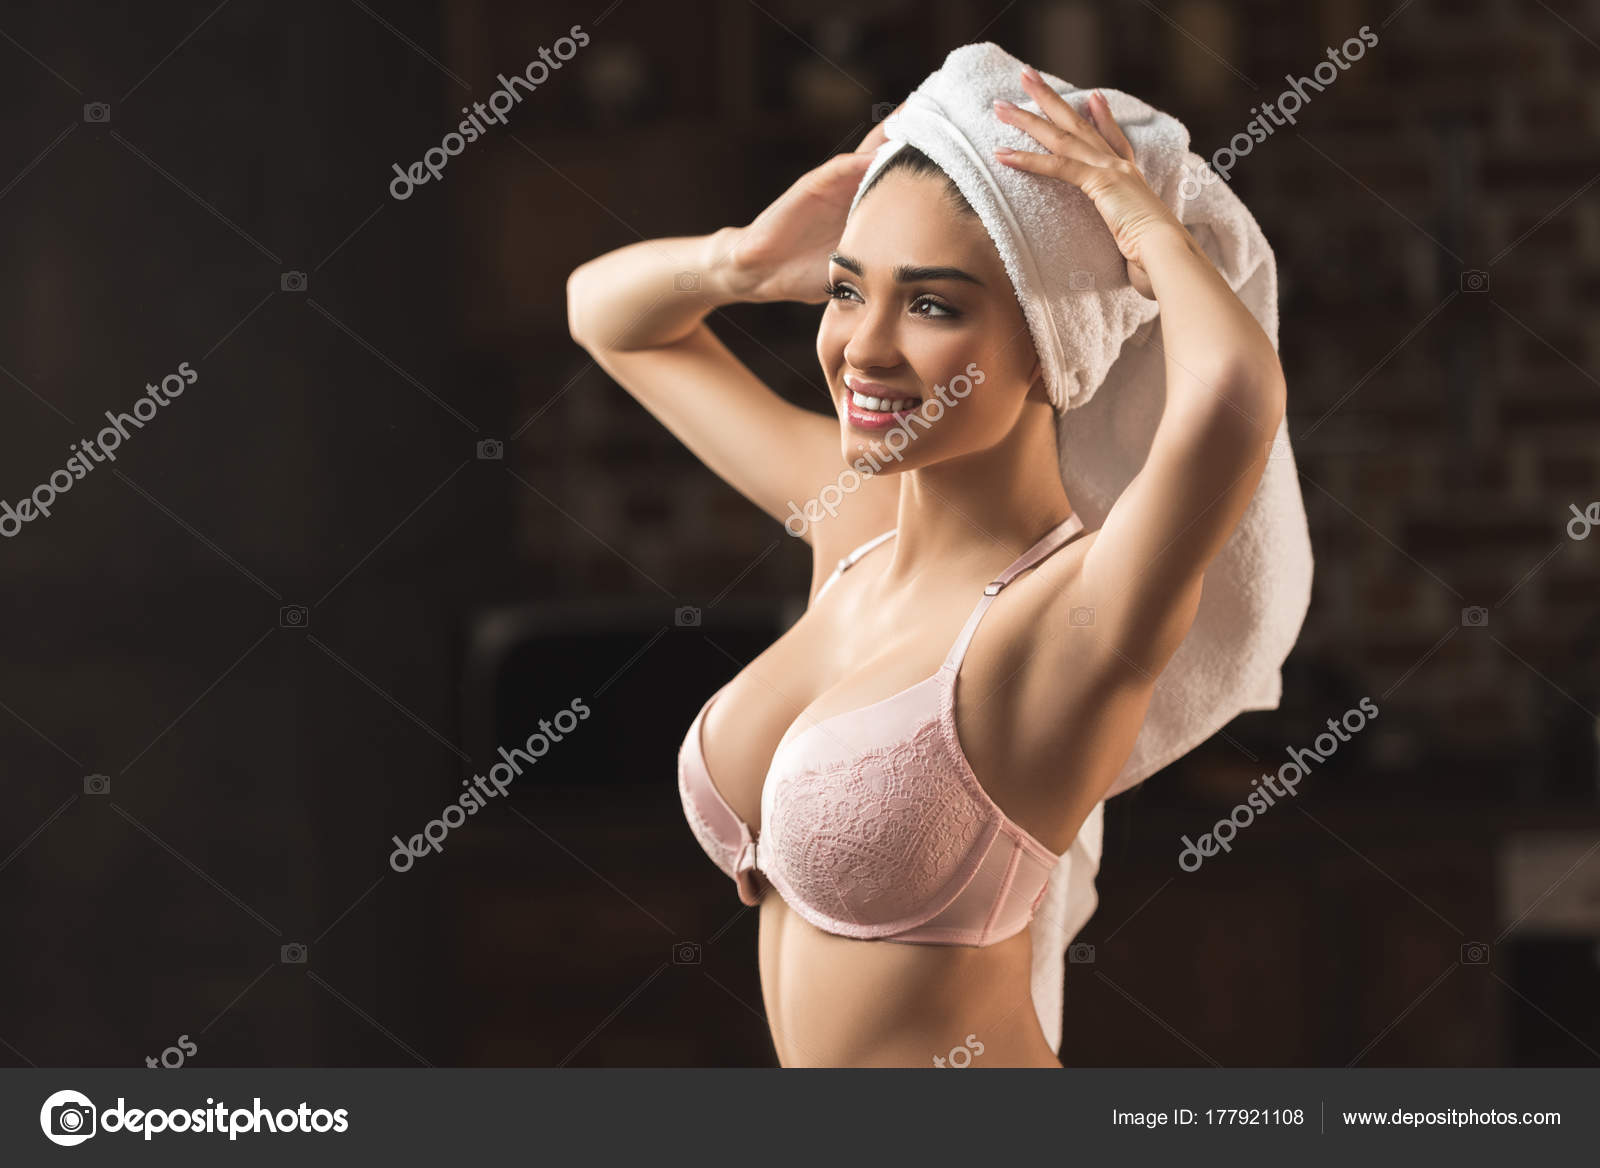 5793f75d6ff5 Beautiful sexy young woman in underwear and towel on head smiling and  looking away at home– stock image